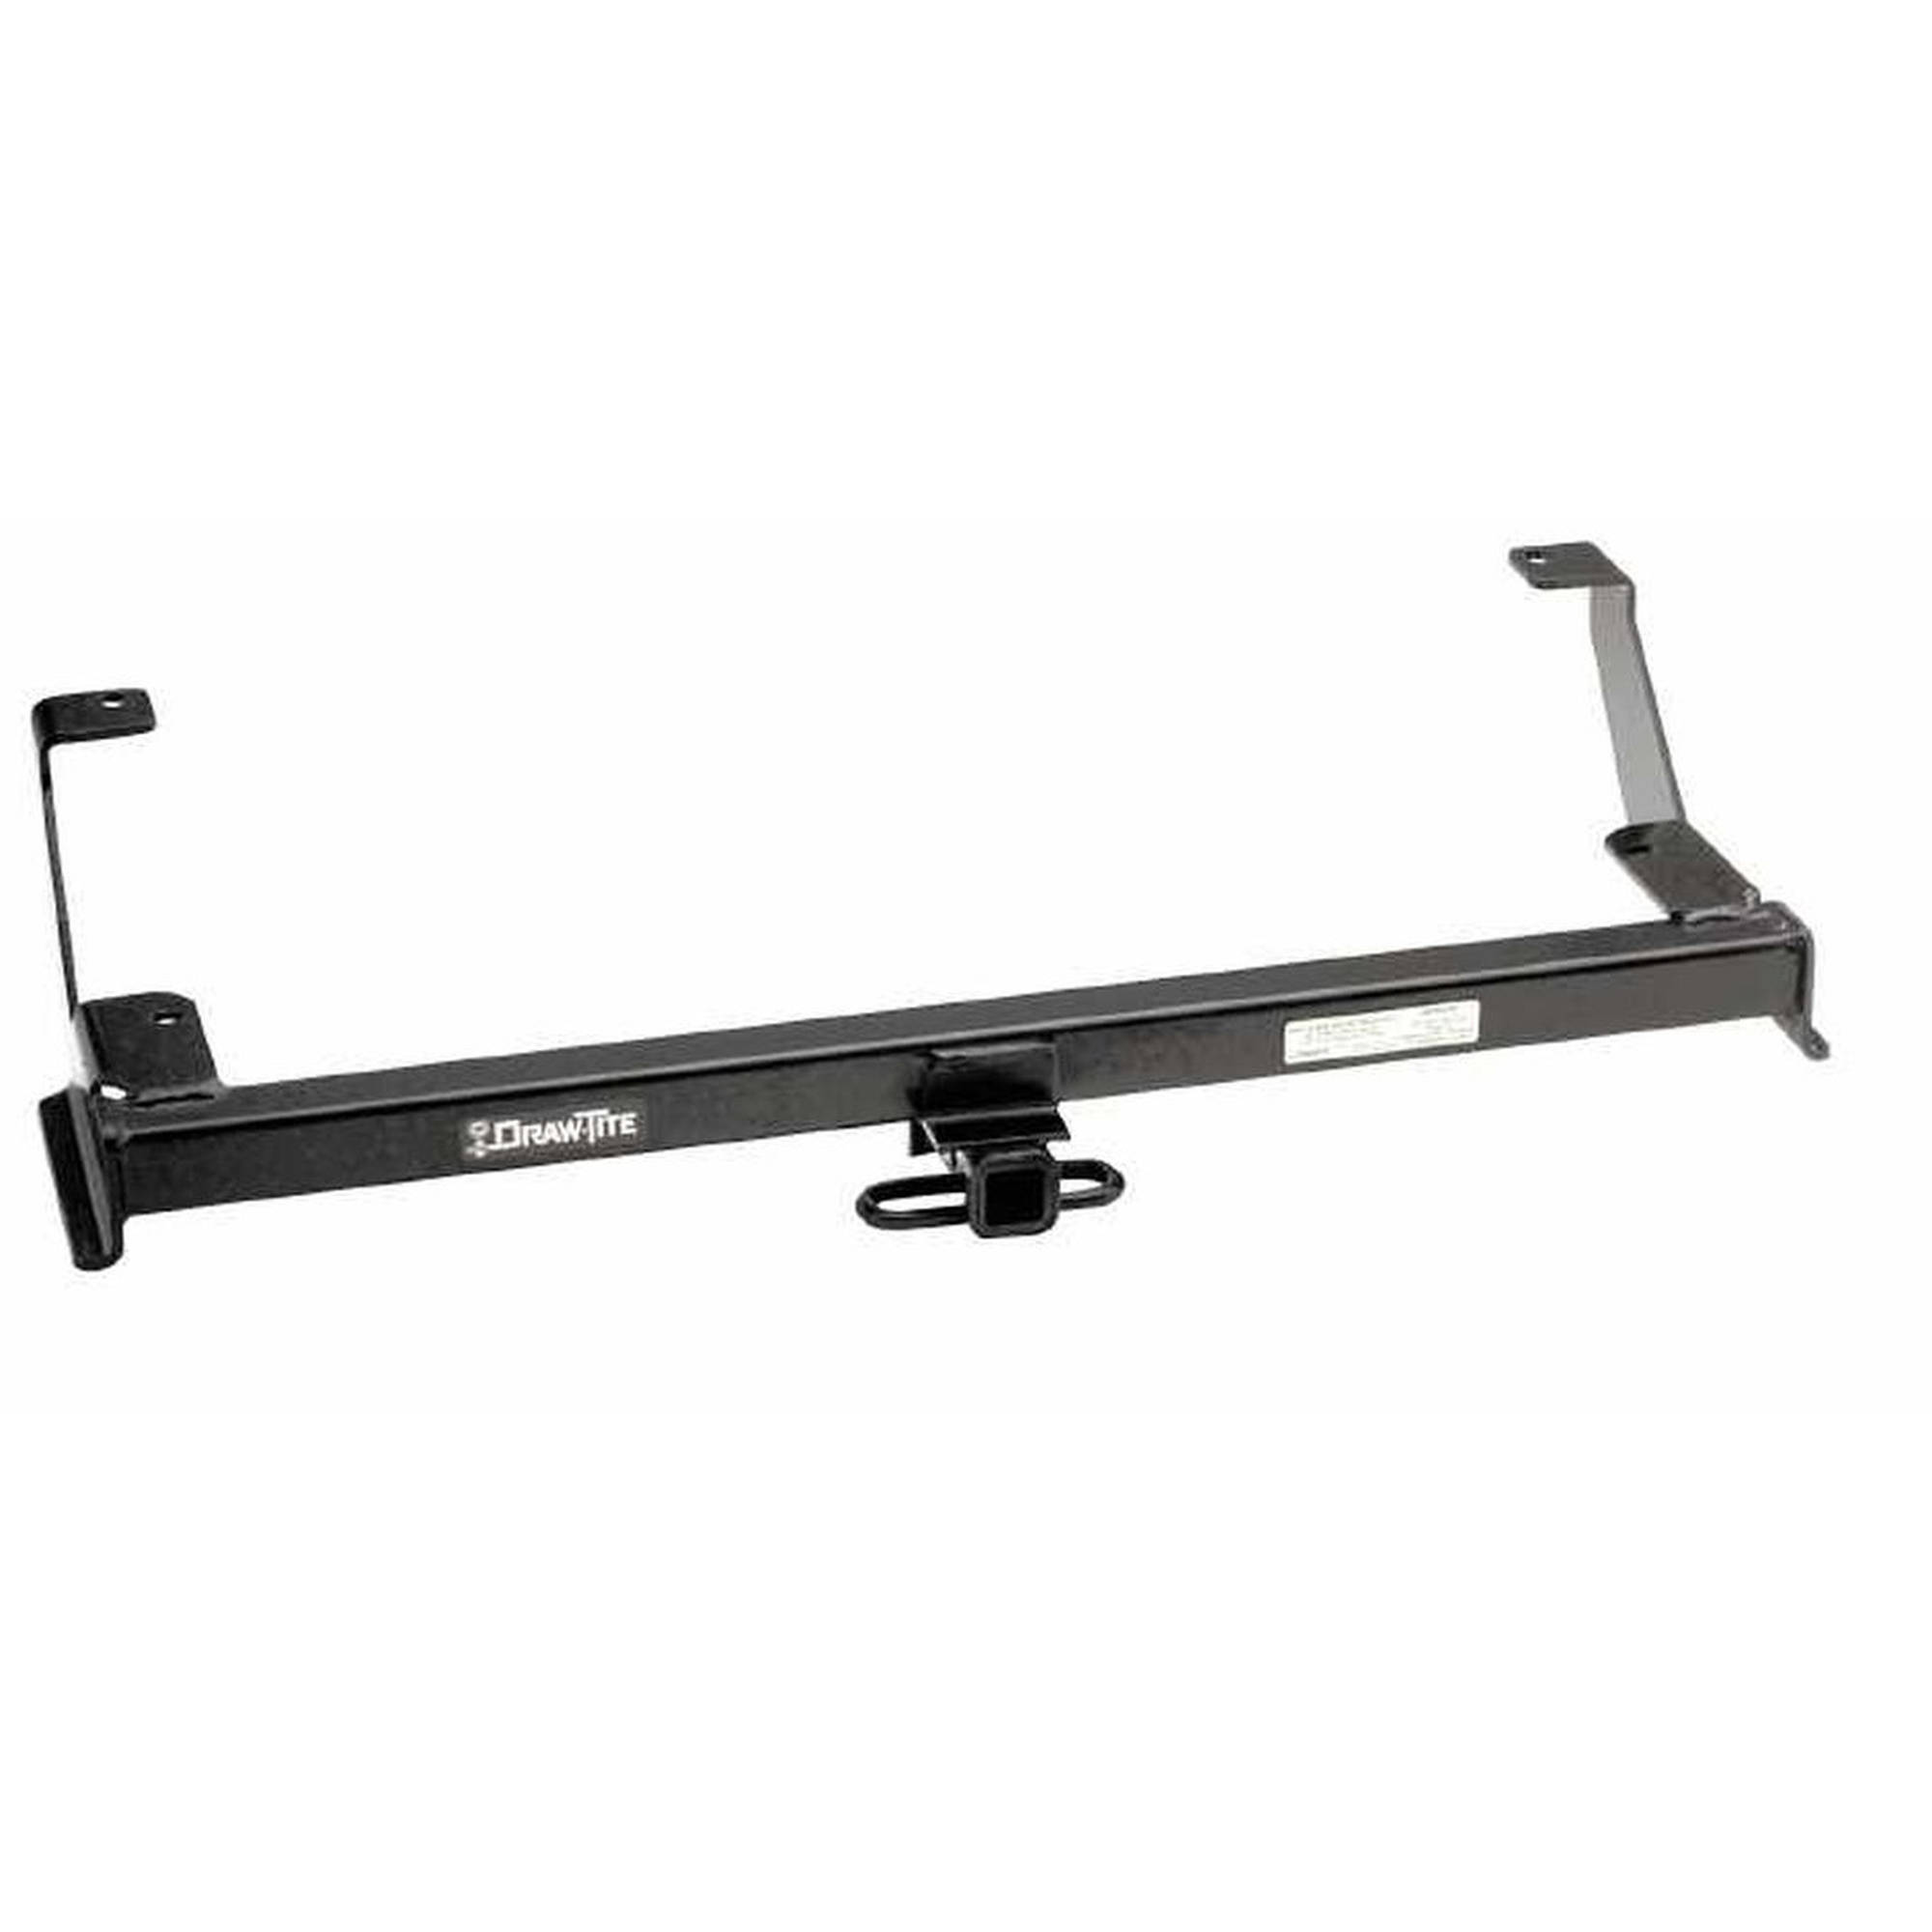 92-06 Camry 99-03 Solara 95-99 Avalon Cls II Hitch with Standard Ball Mount Kit Replacement Auto Part, Easy to... by Draw-Tite